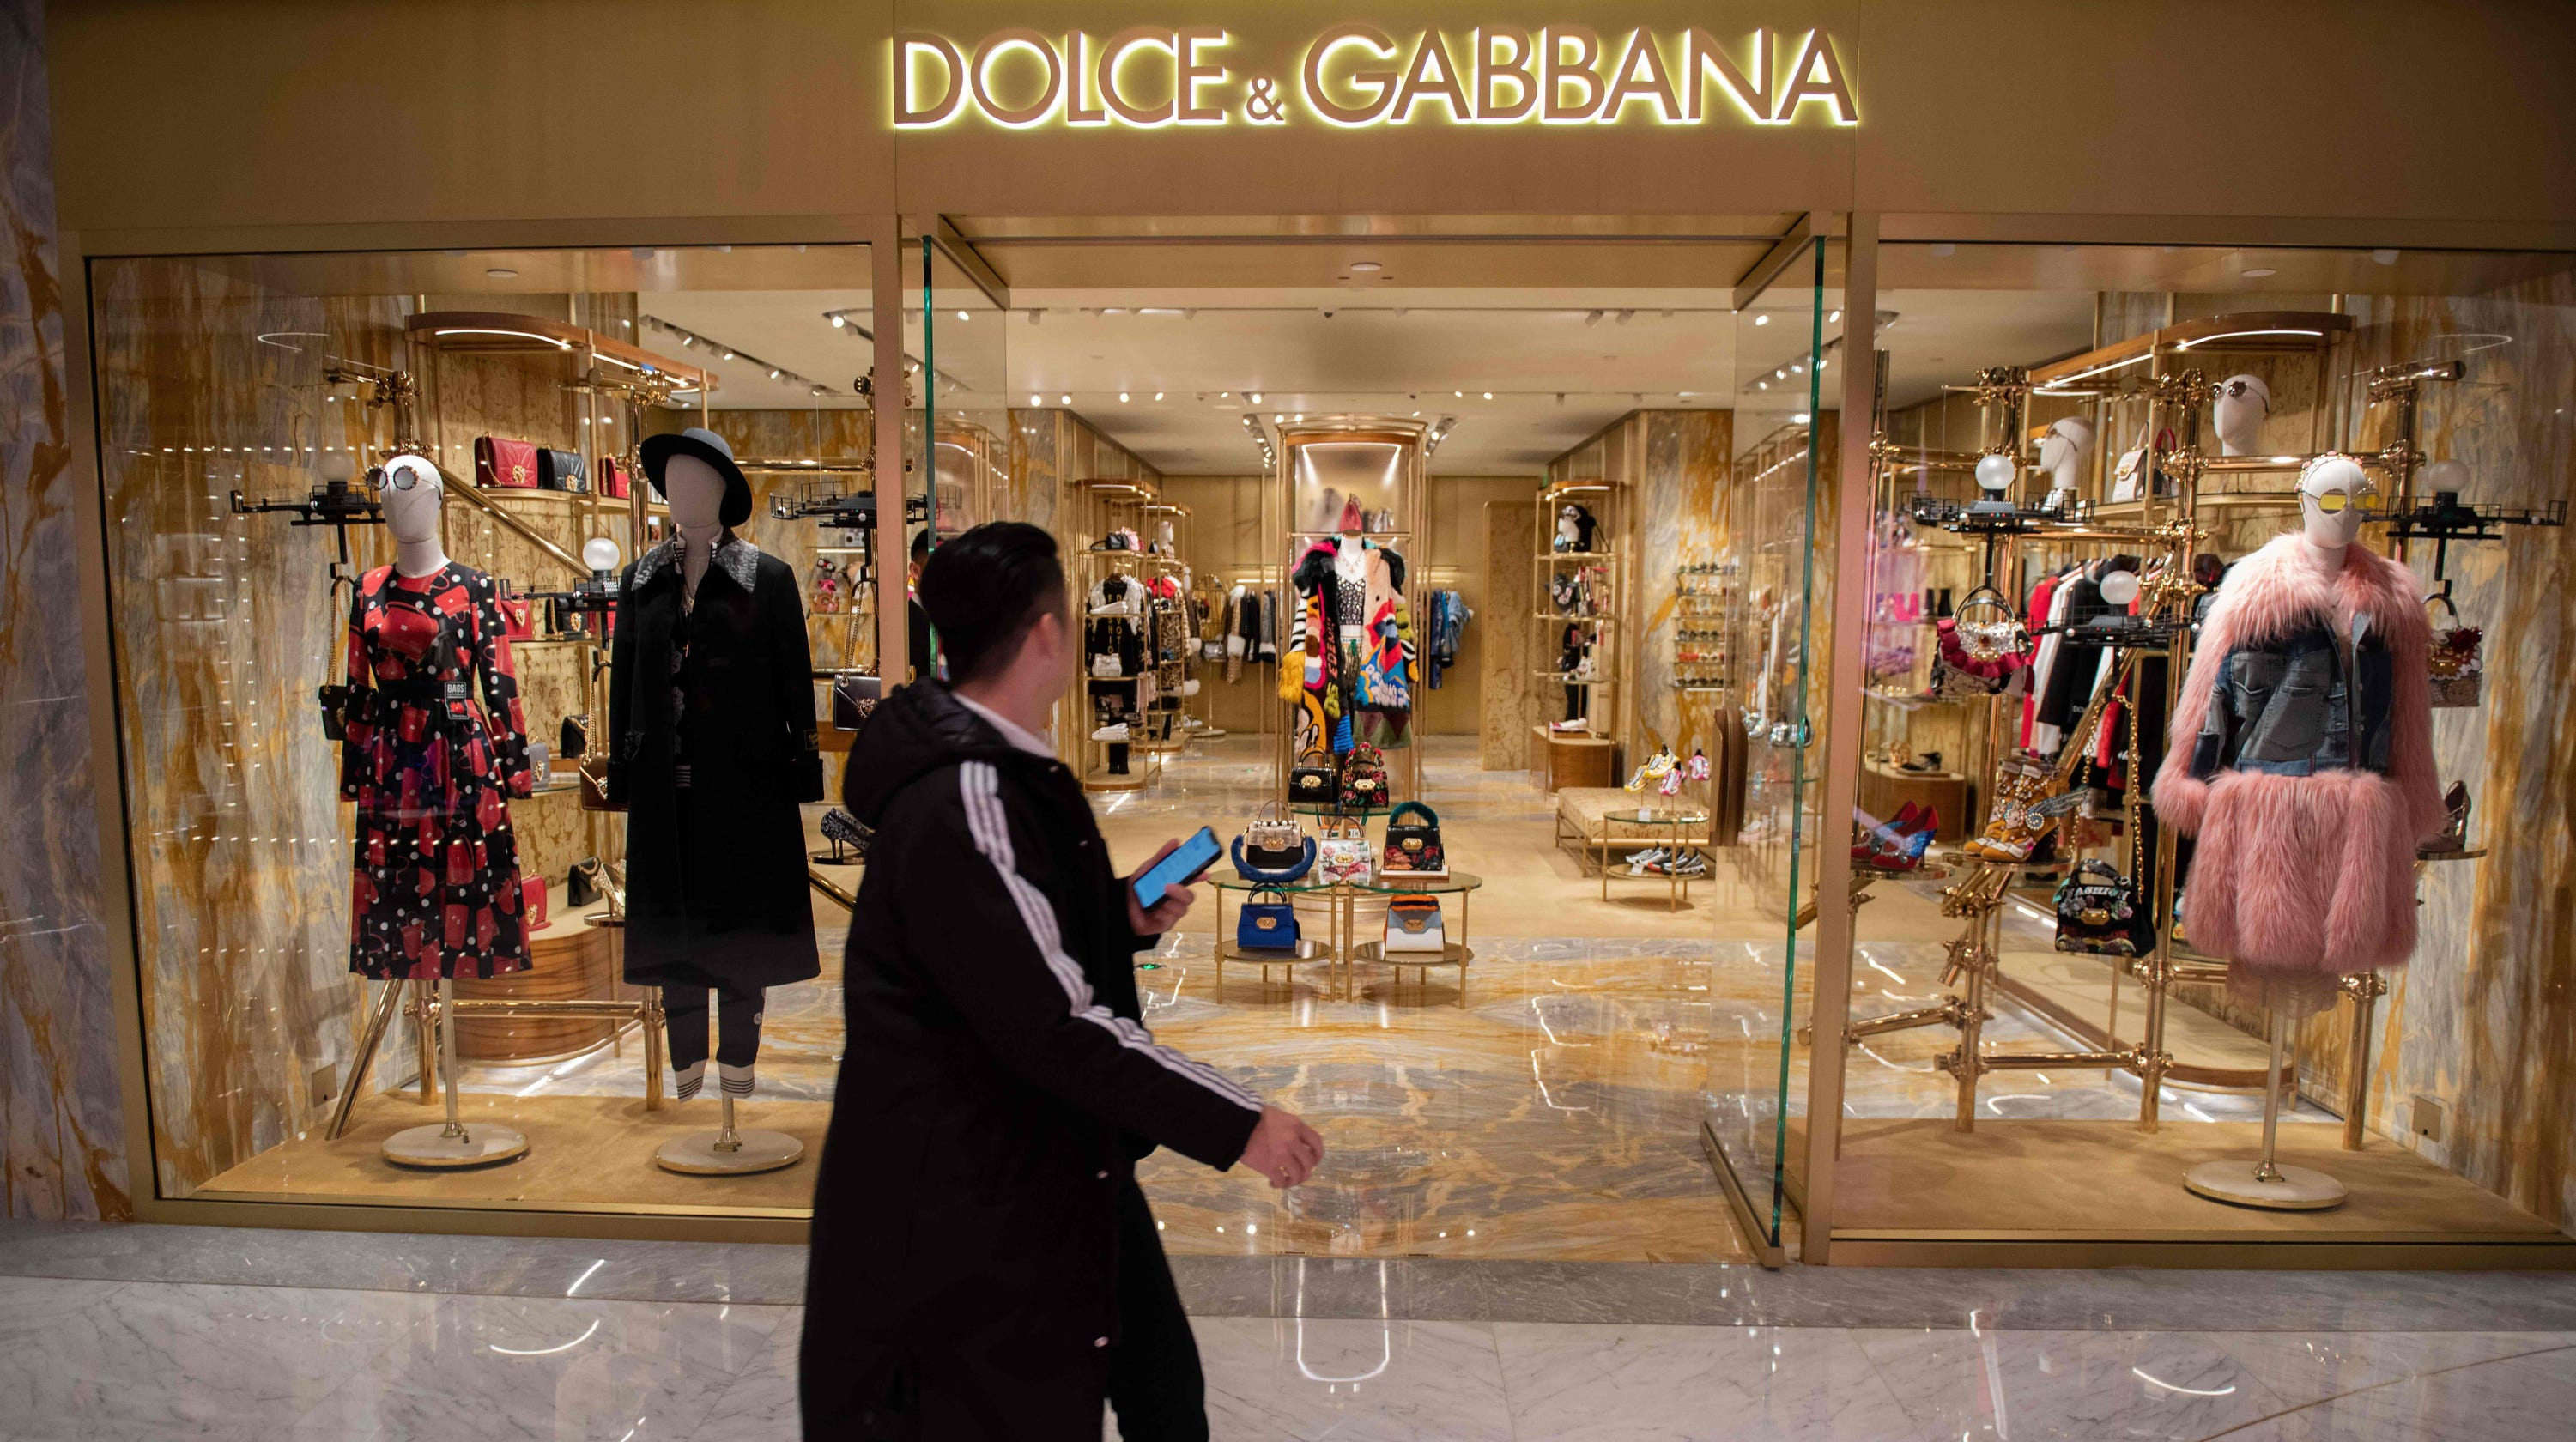 57f2396dc Dolce and Gabbana apologize following backlash over 'racist' ads